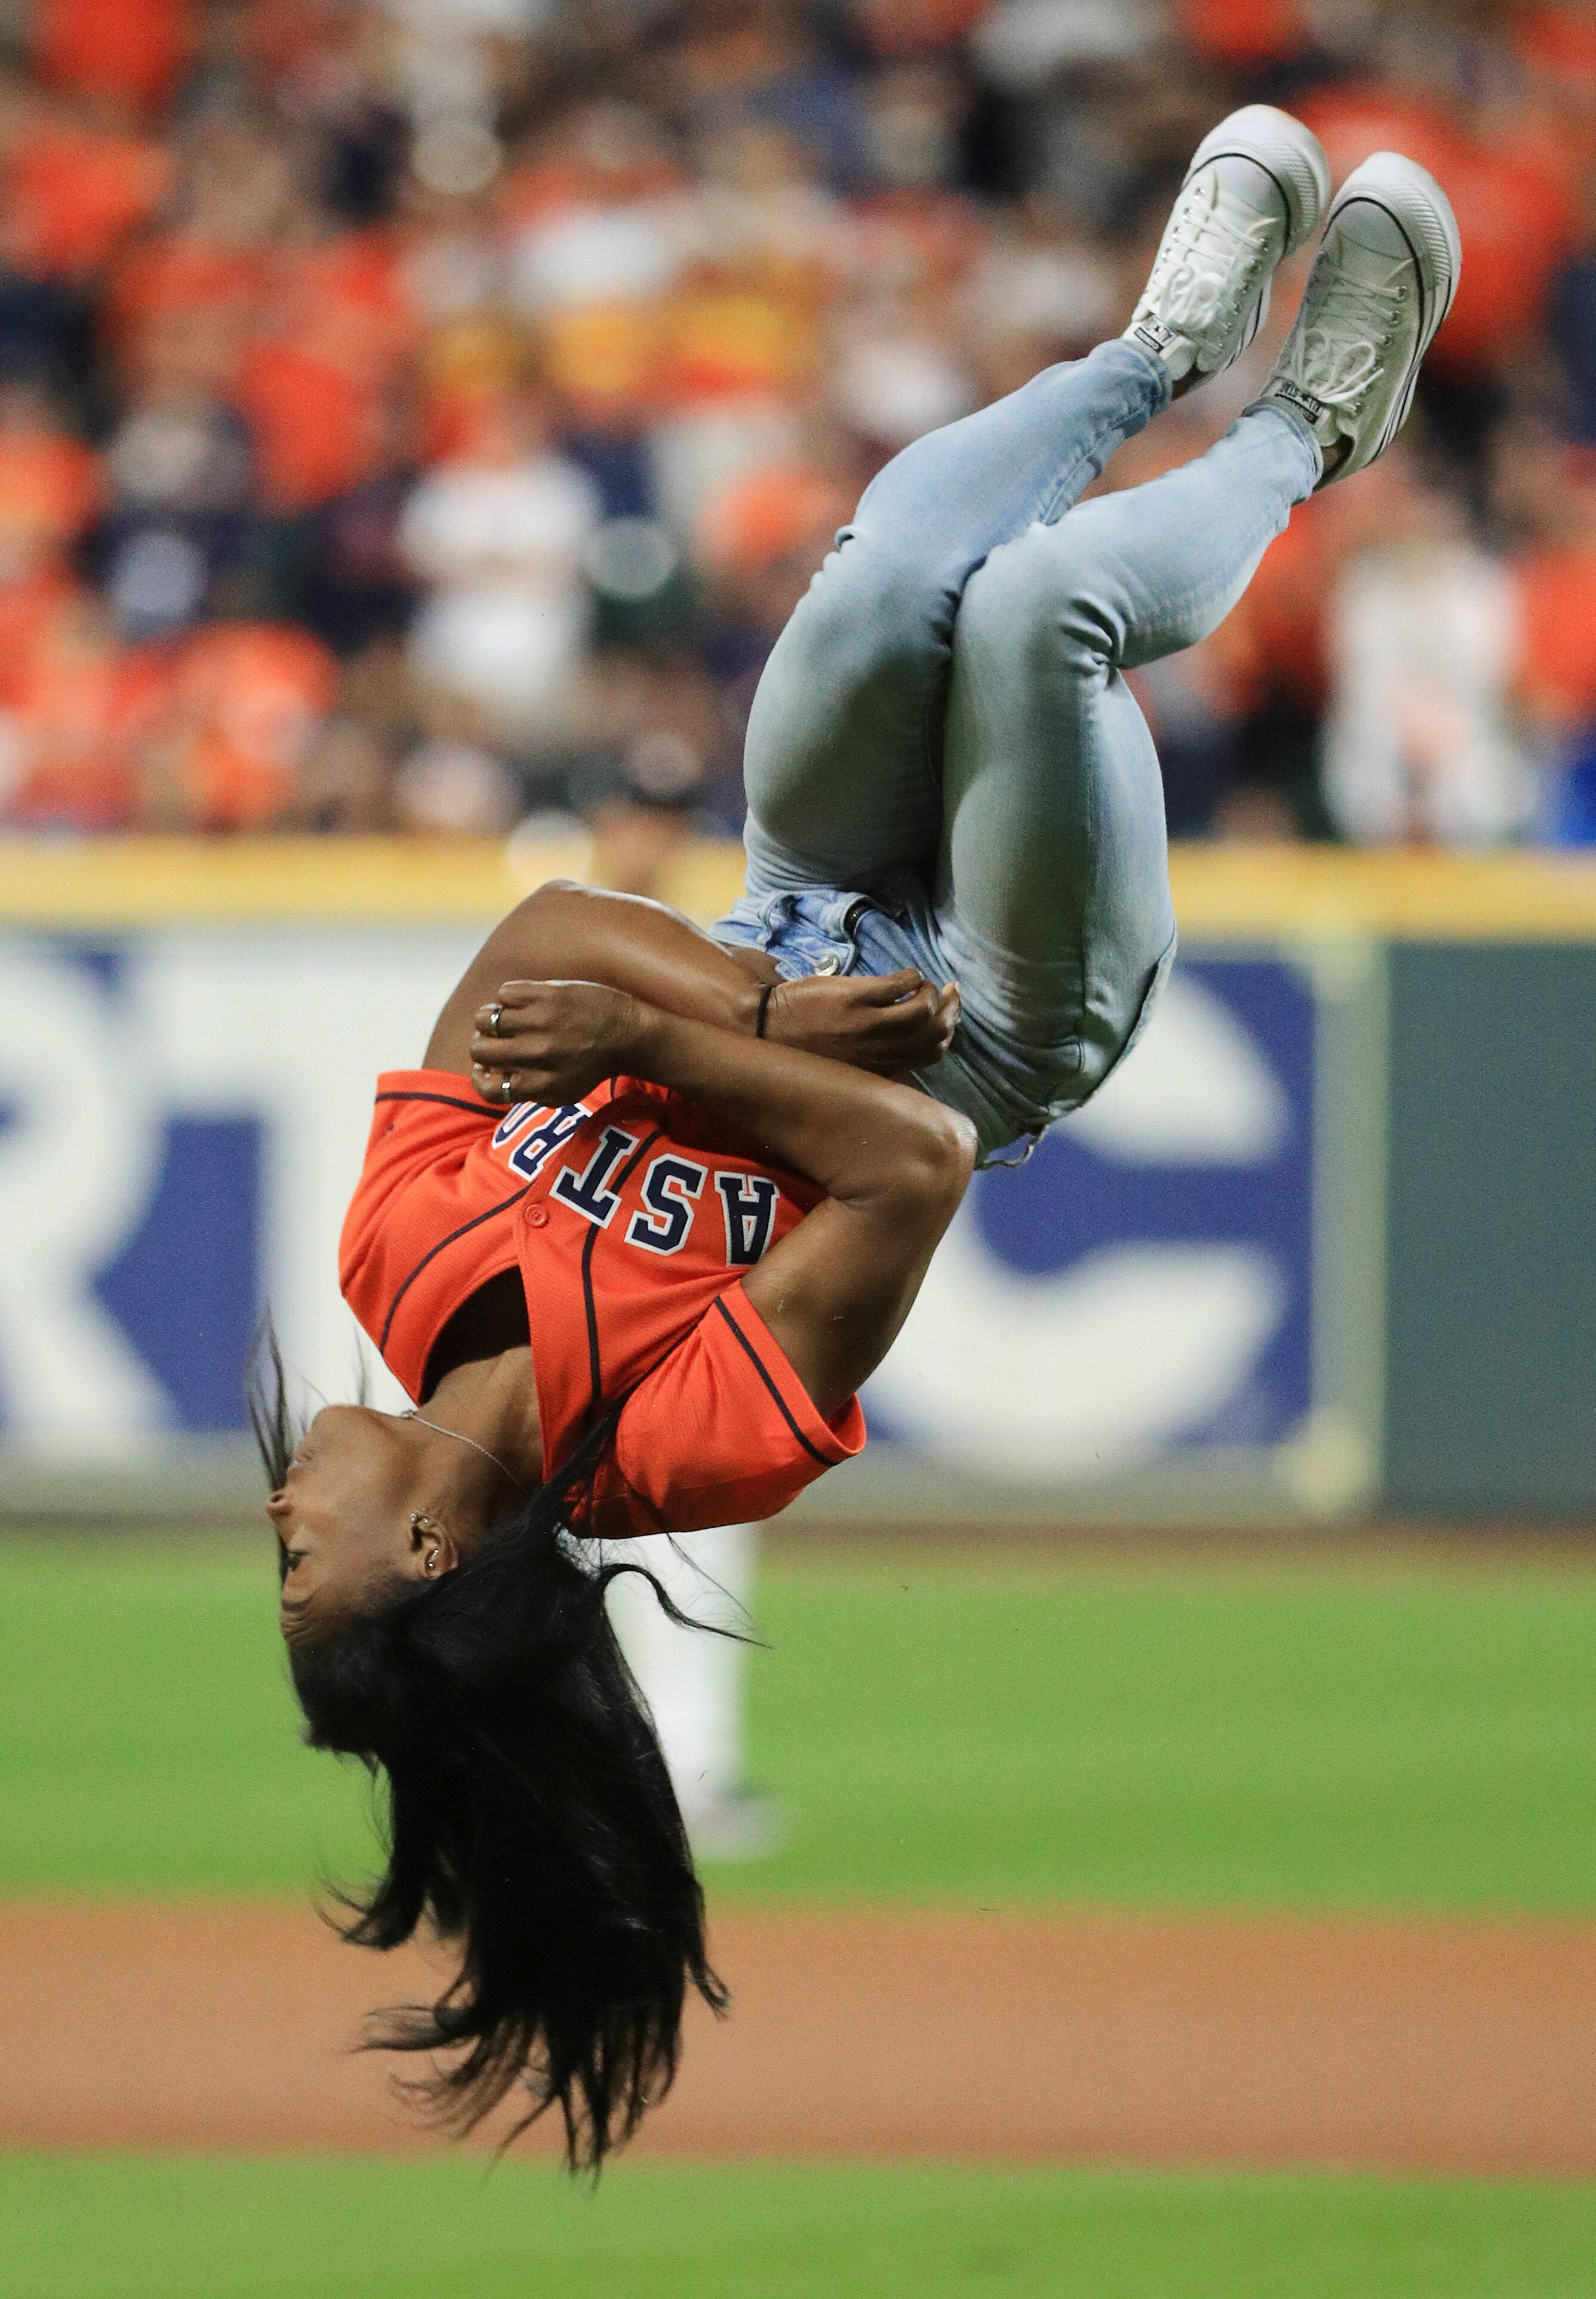 Simone Biles at a World Series game between the Houston Astros and the Washington Nationals on October 23, 2019 in Texas   Source: Getty Images